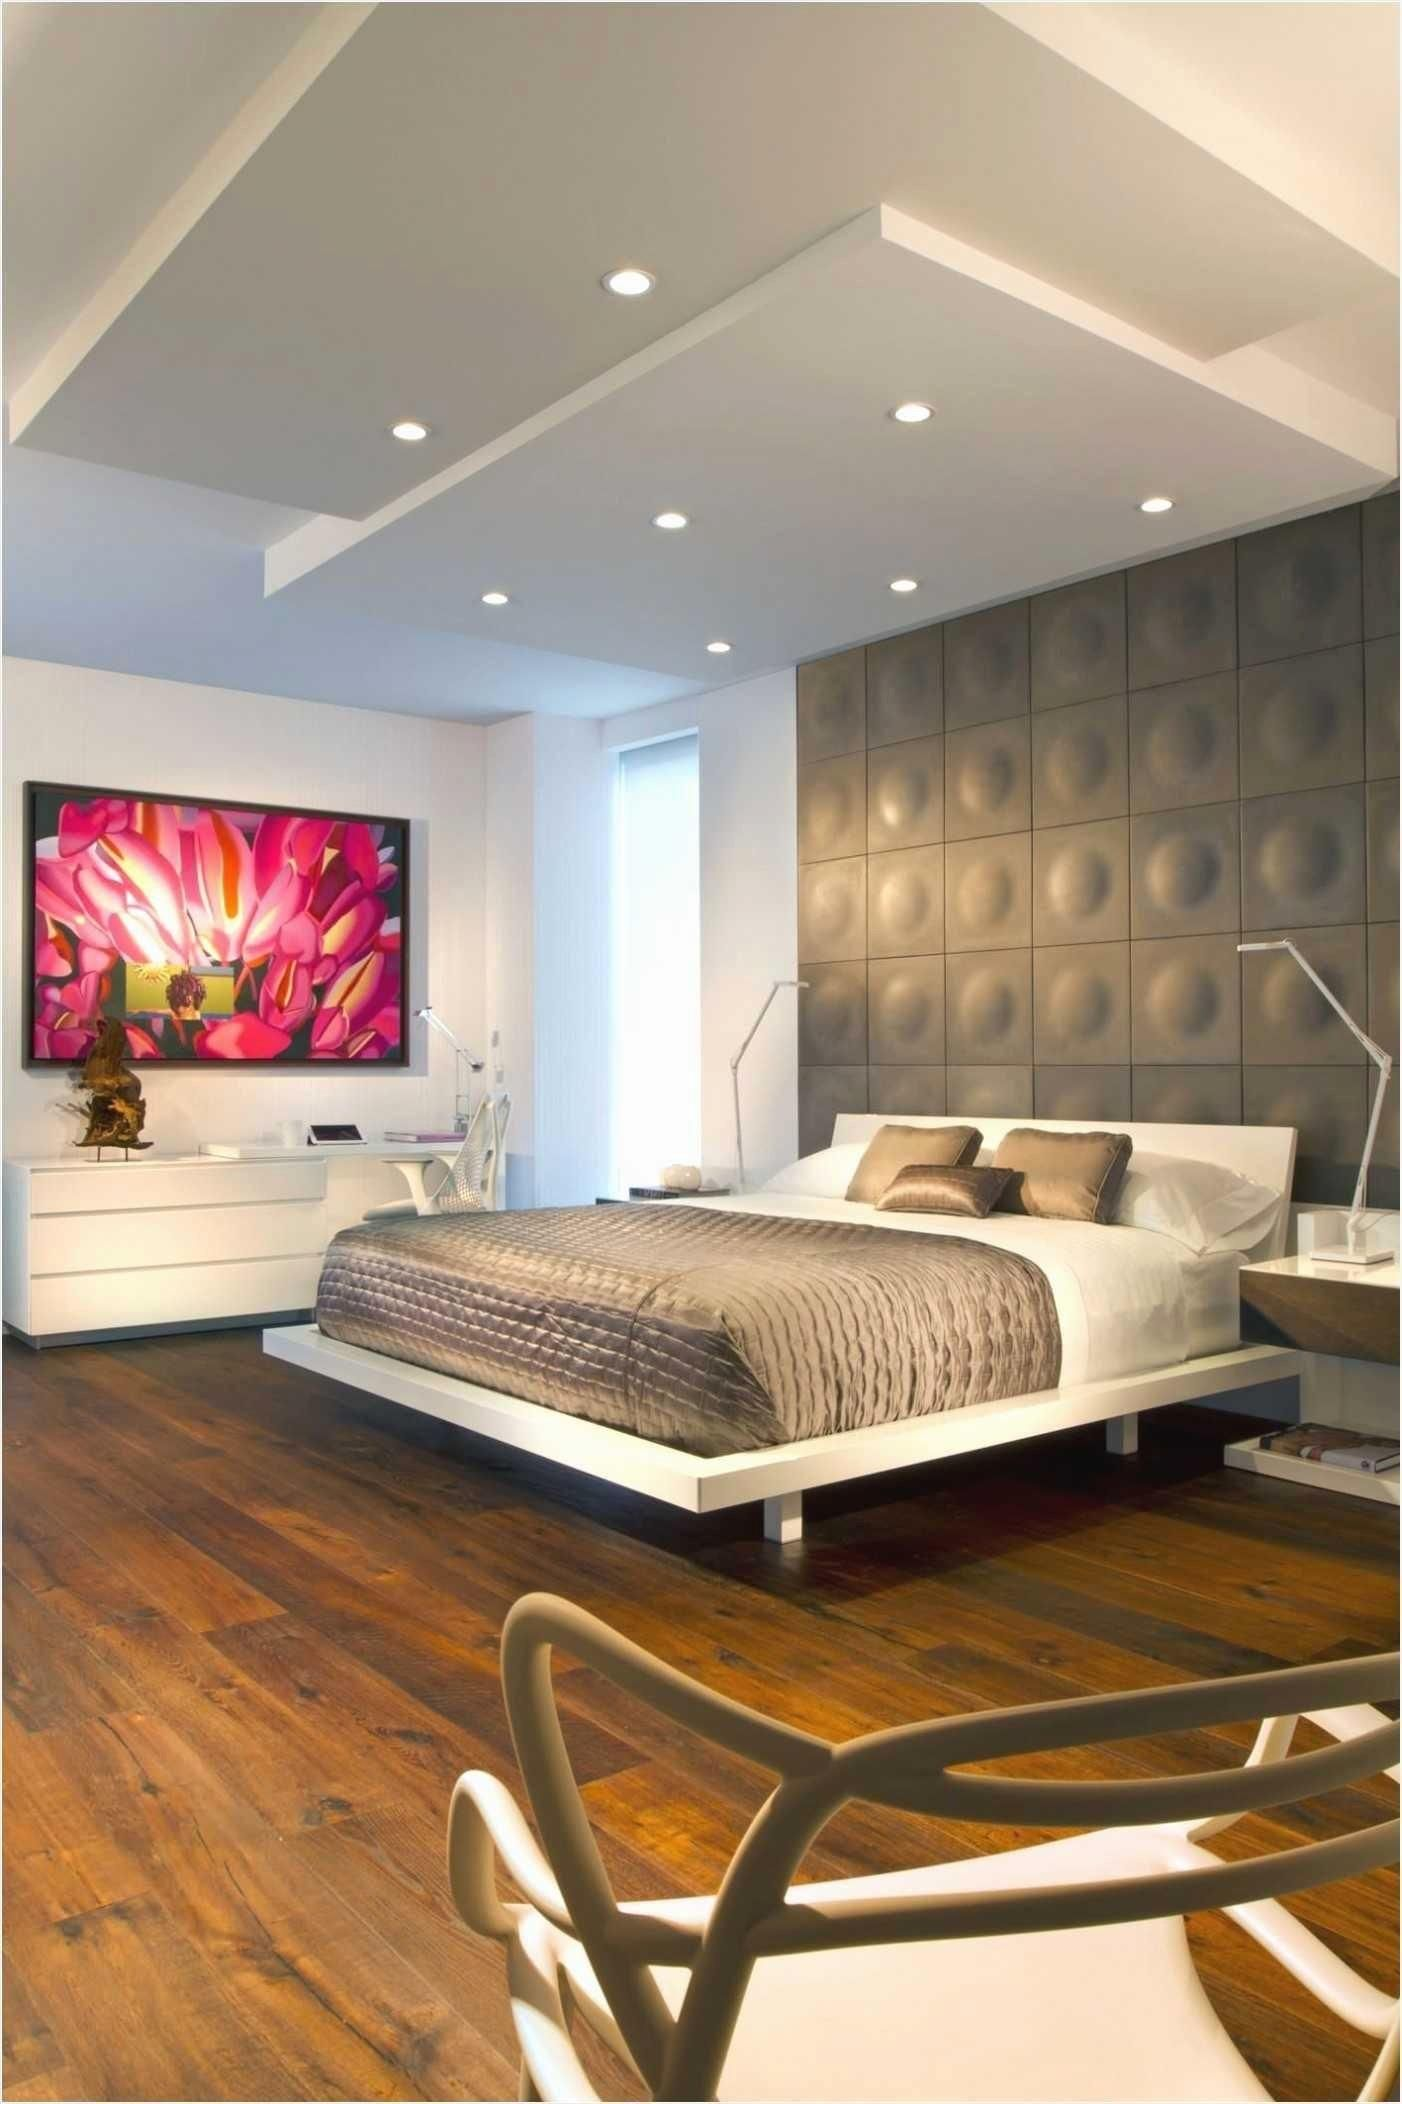 Kids Room False Ceiling Design: Fine Schlafzimmer Ideen T?rkis That You Must Know, Youre